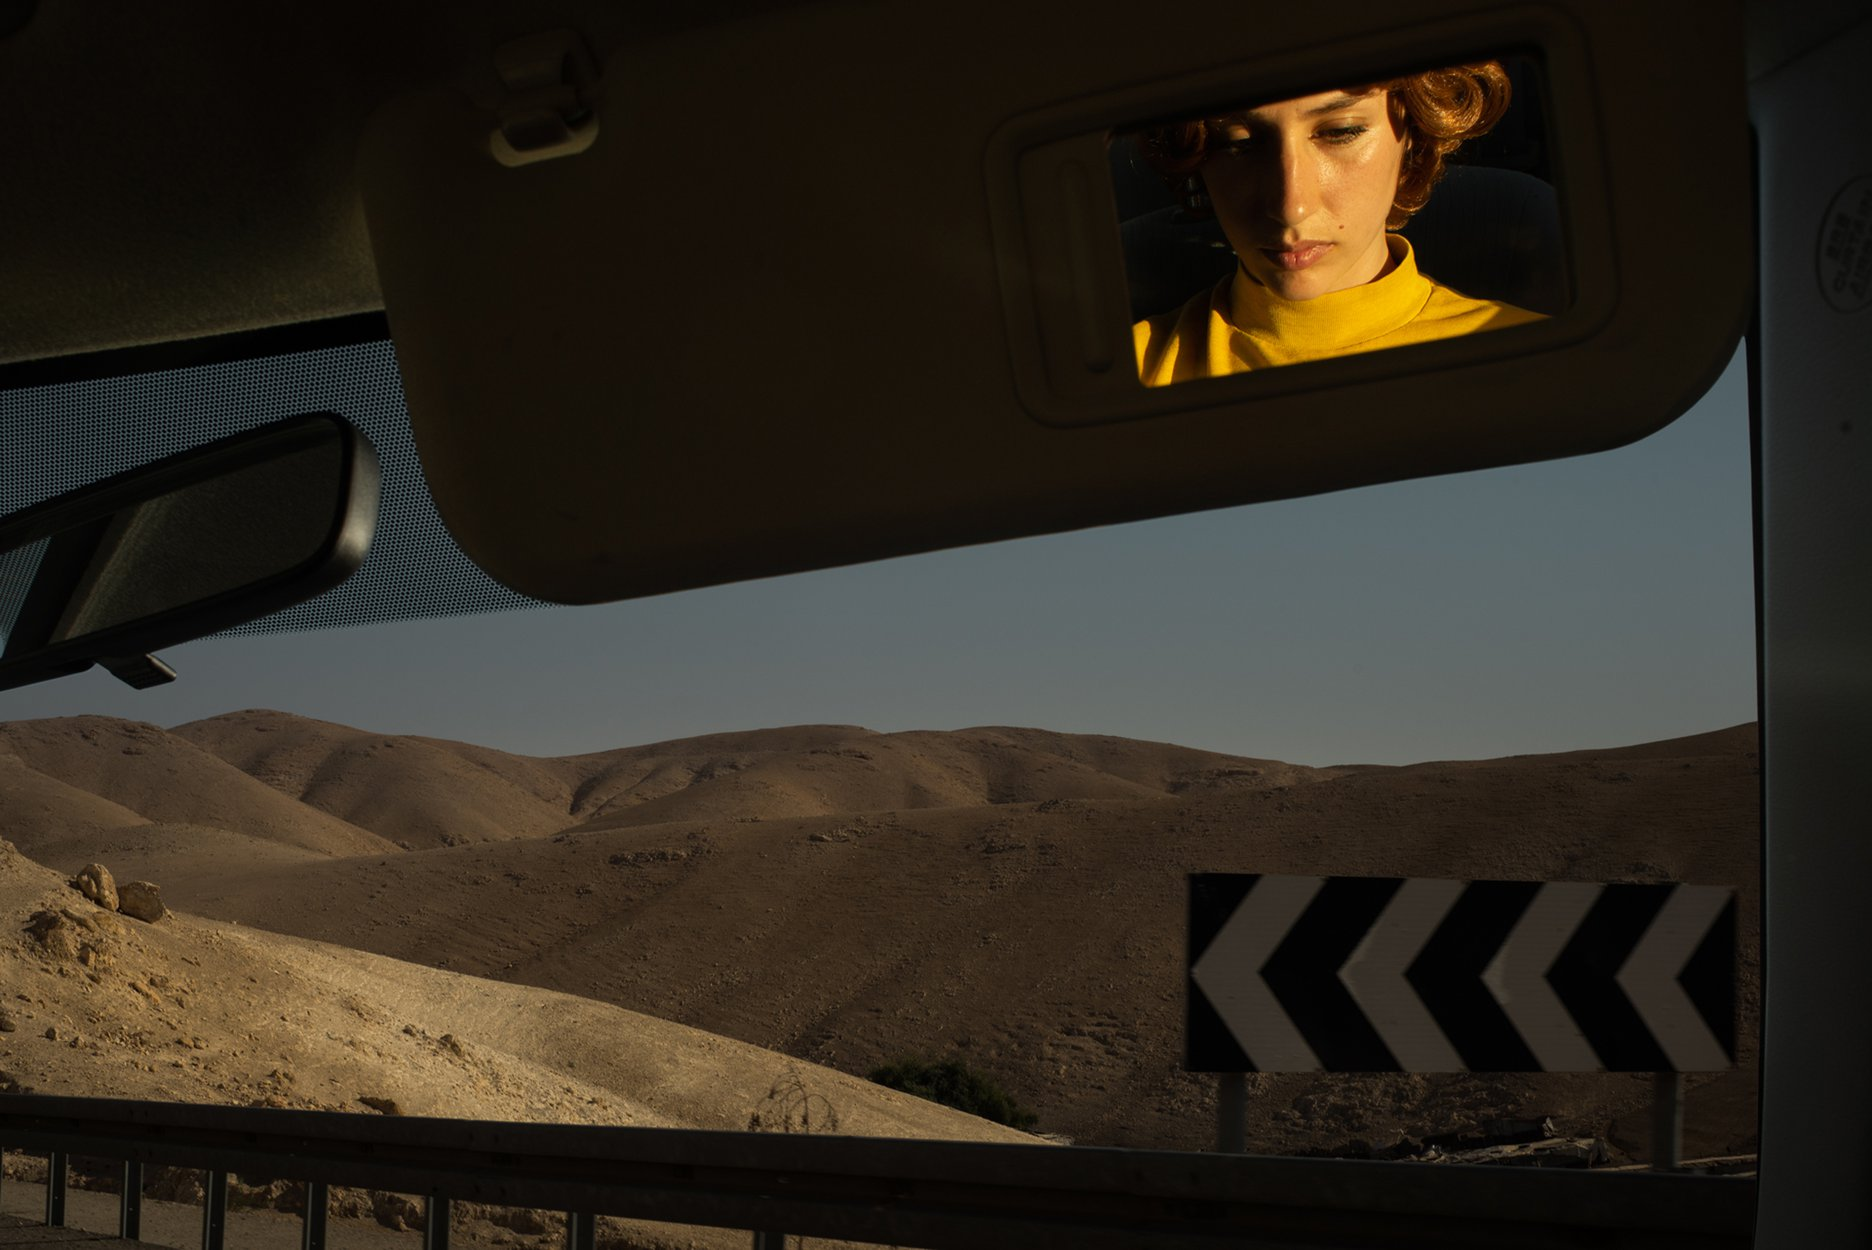 tania franco klein mirror self portrait from the series proceed to the route